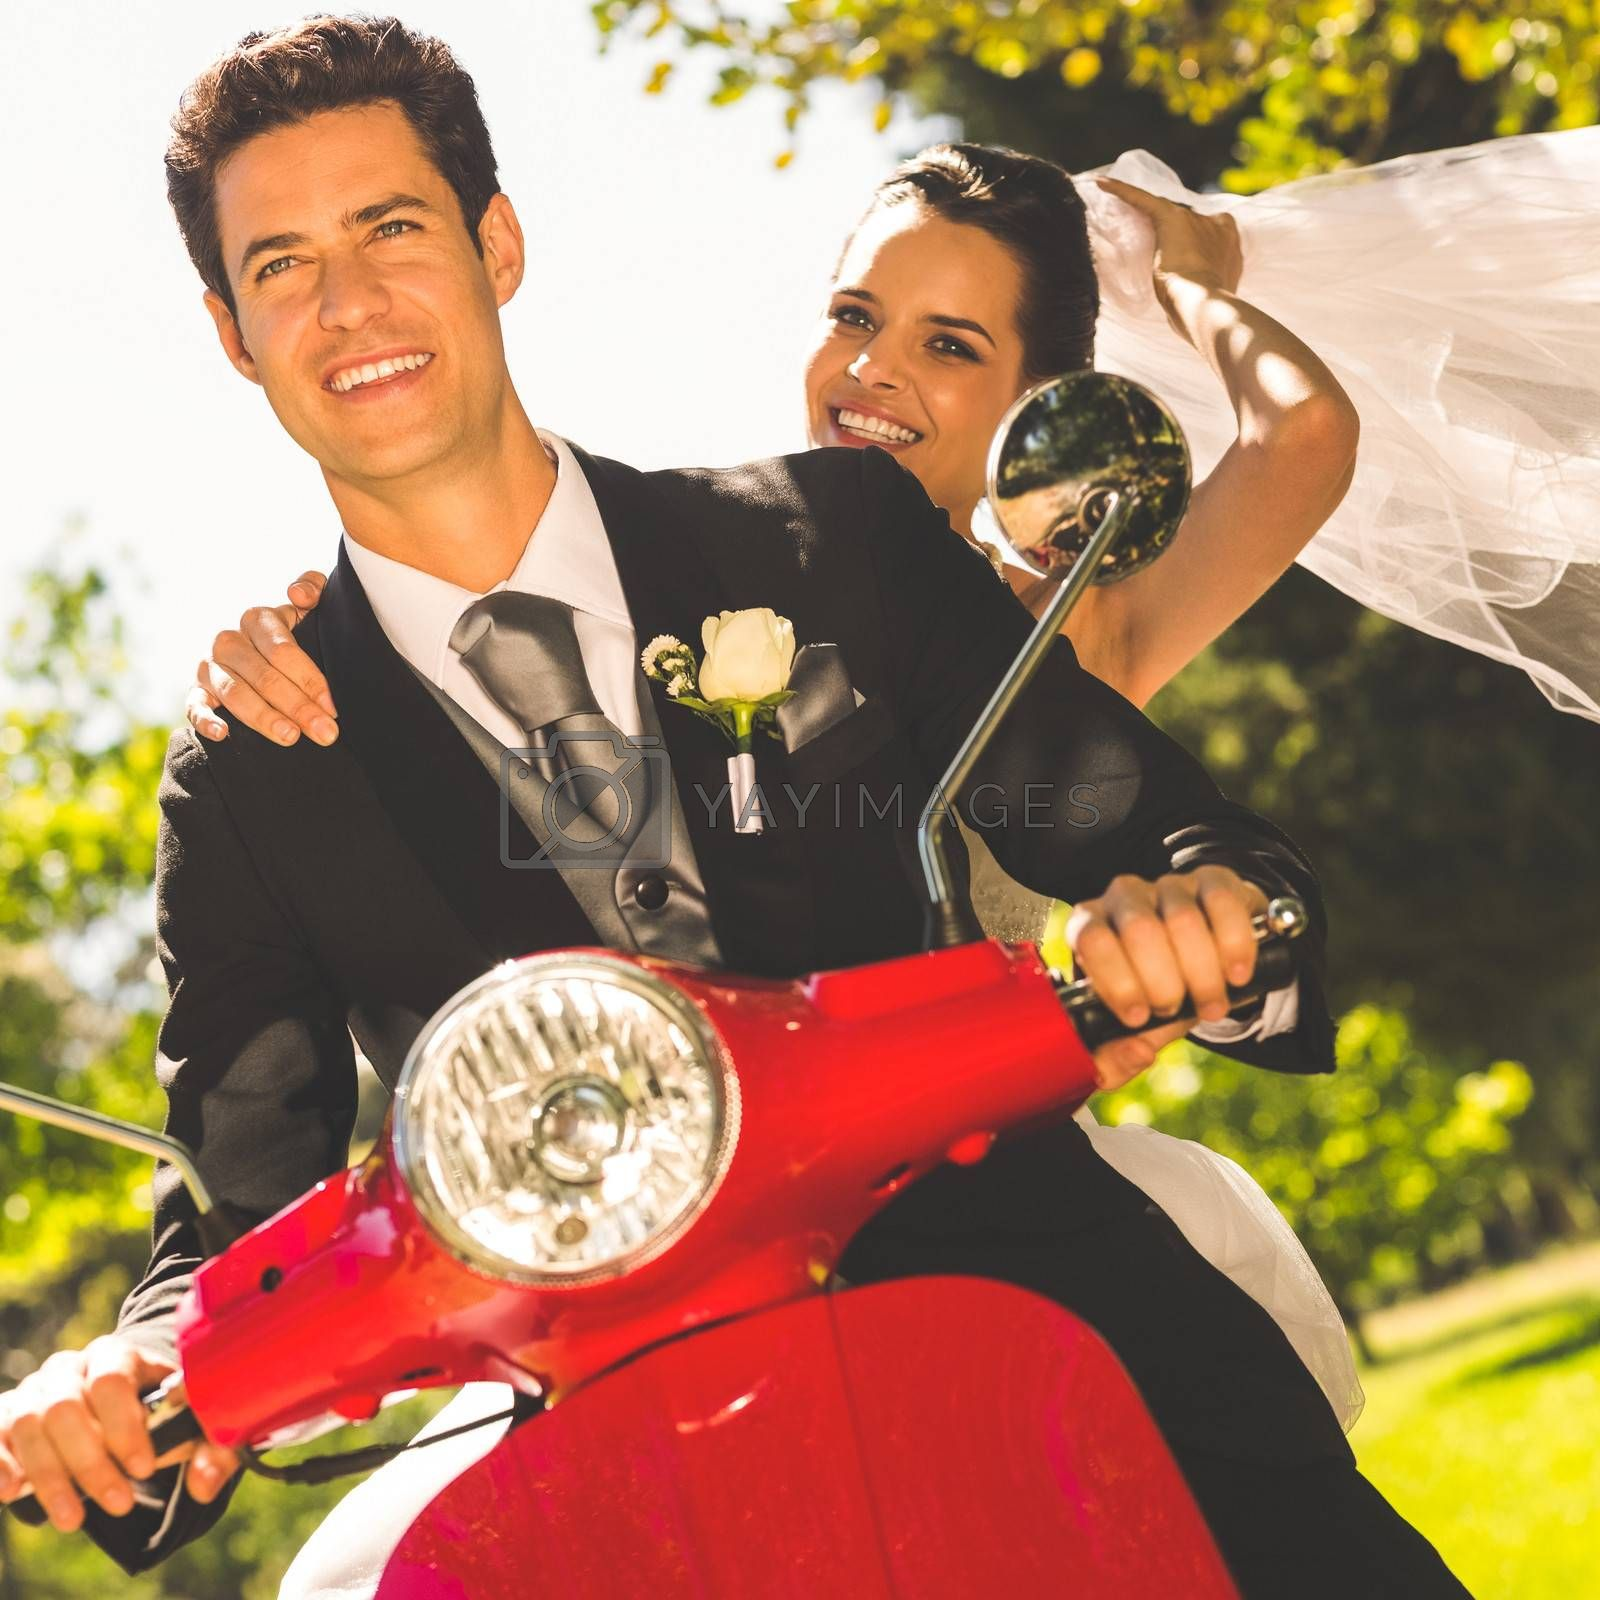 Portrait of a newlywed couple enjoying scooter ride